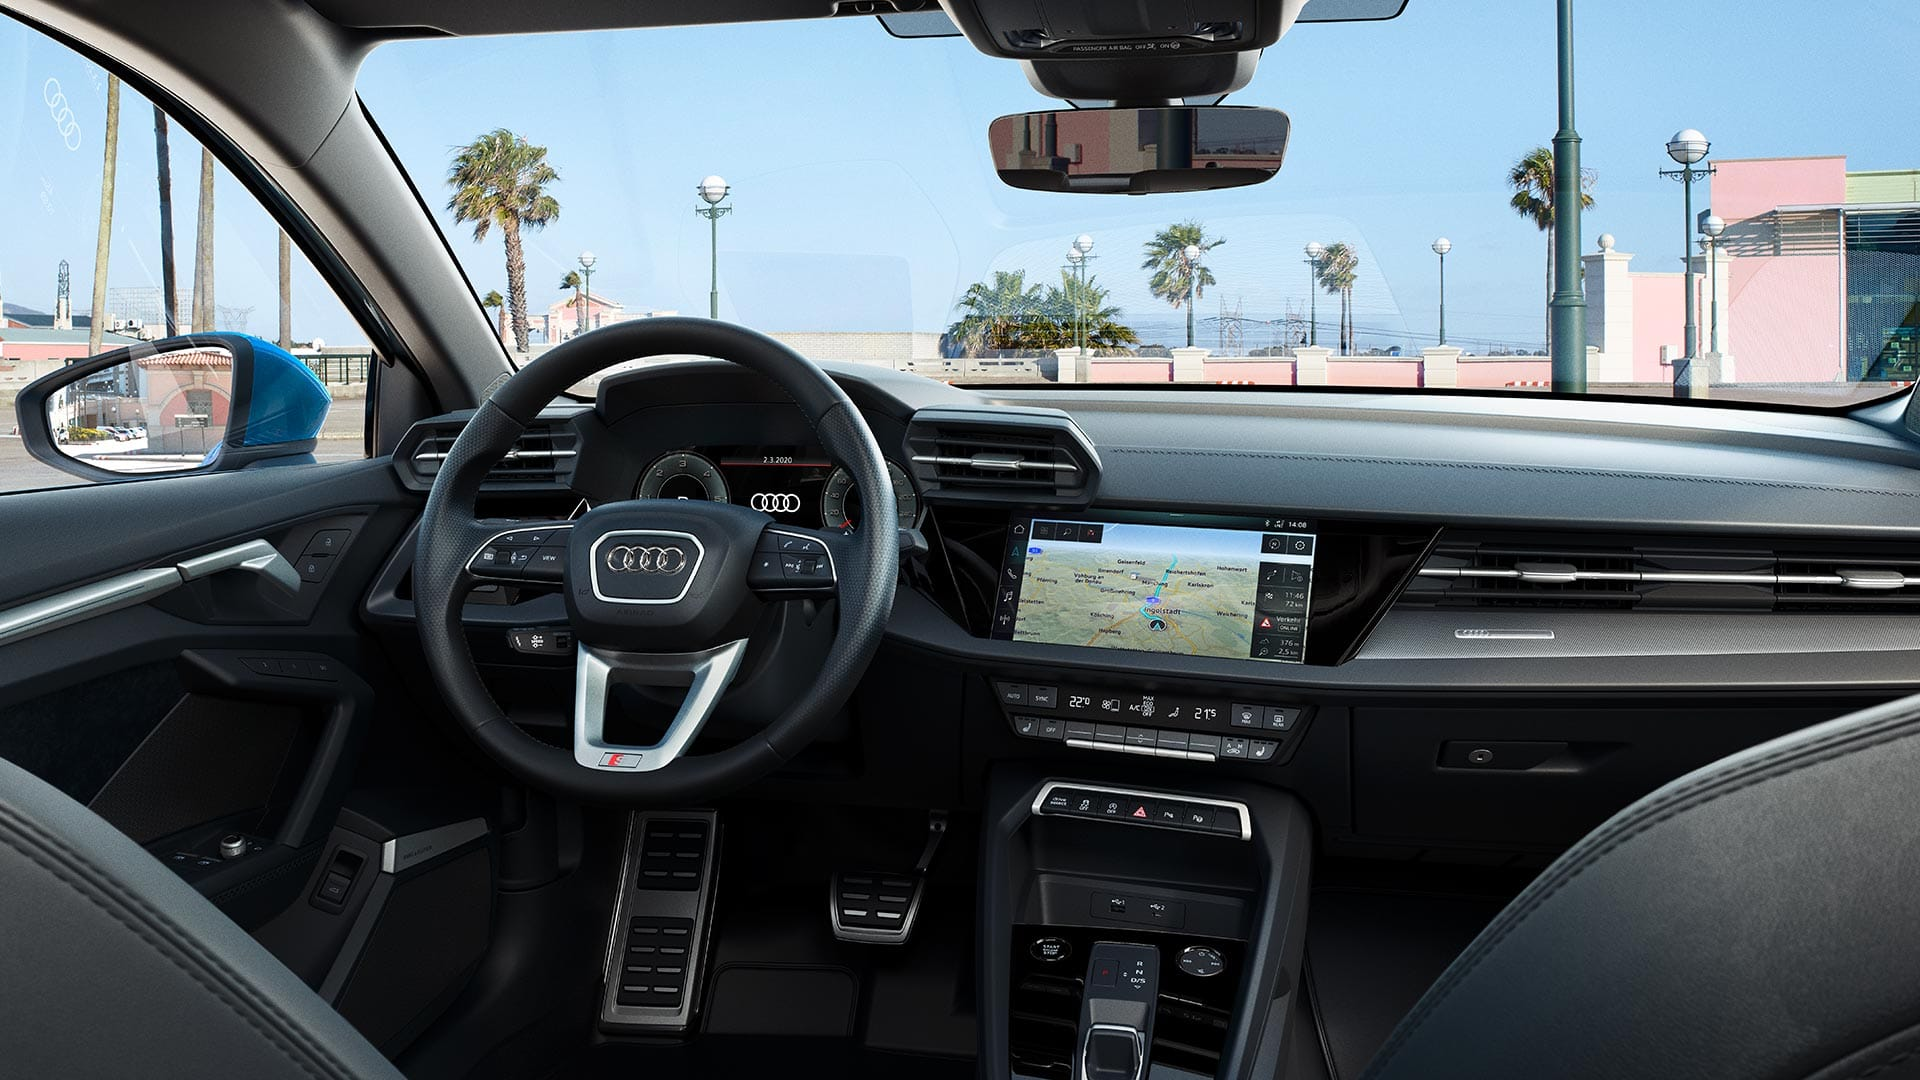 The interior of the Audi A3 Sportback